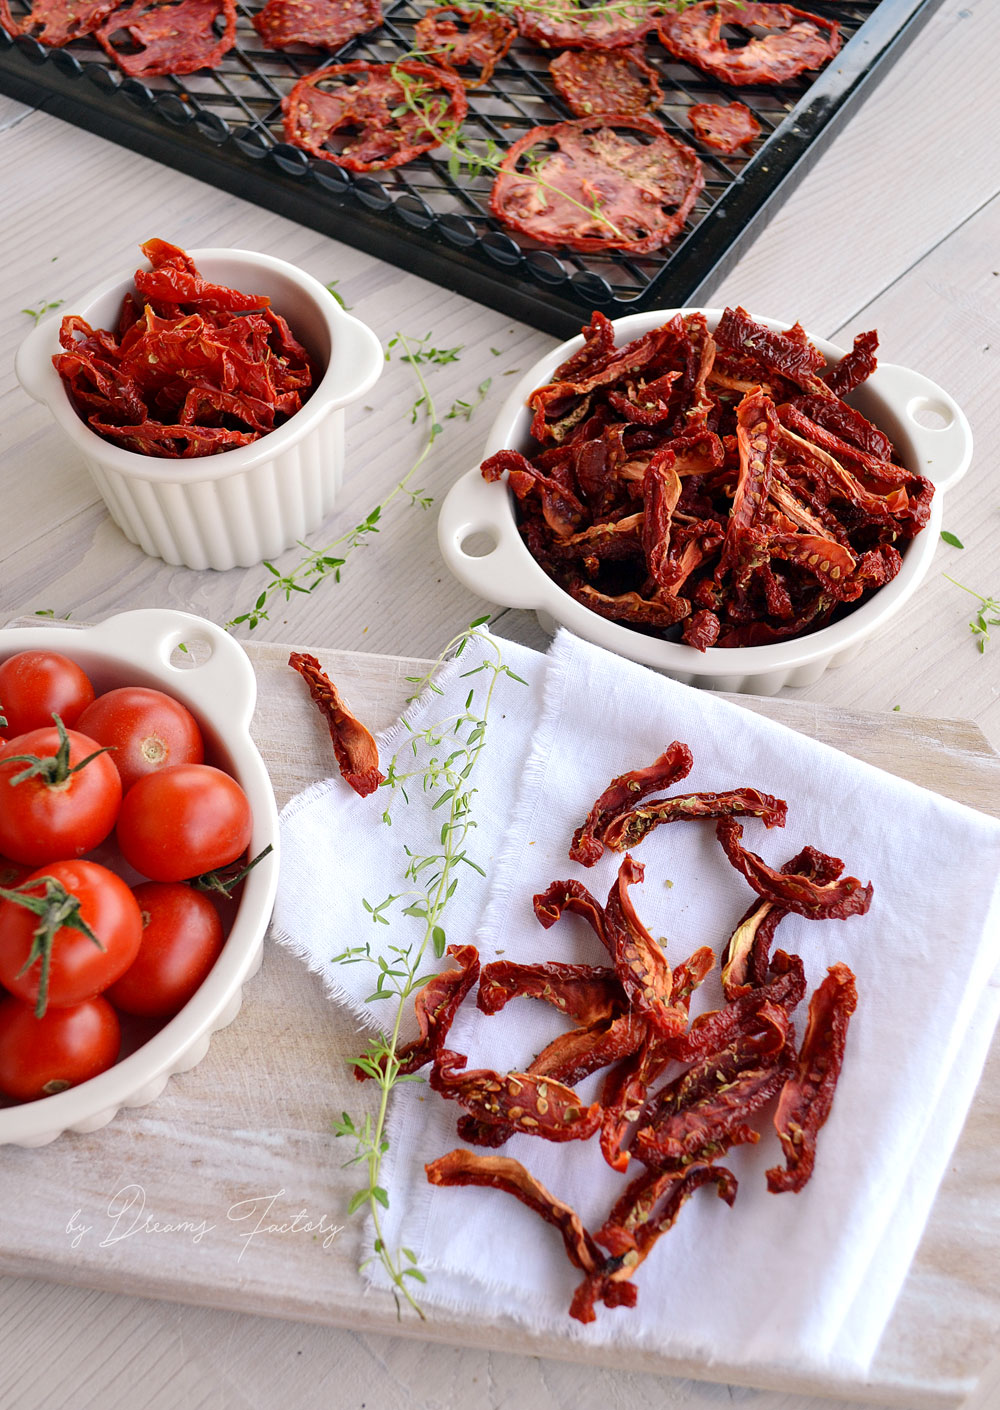 Using a dehydrator Froothie Optimum P200 dehydrator product review - dehydrating sun-dried tomatoes www.bydreamsfactory.com